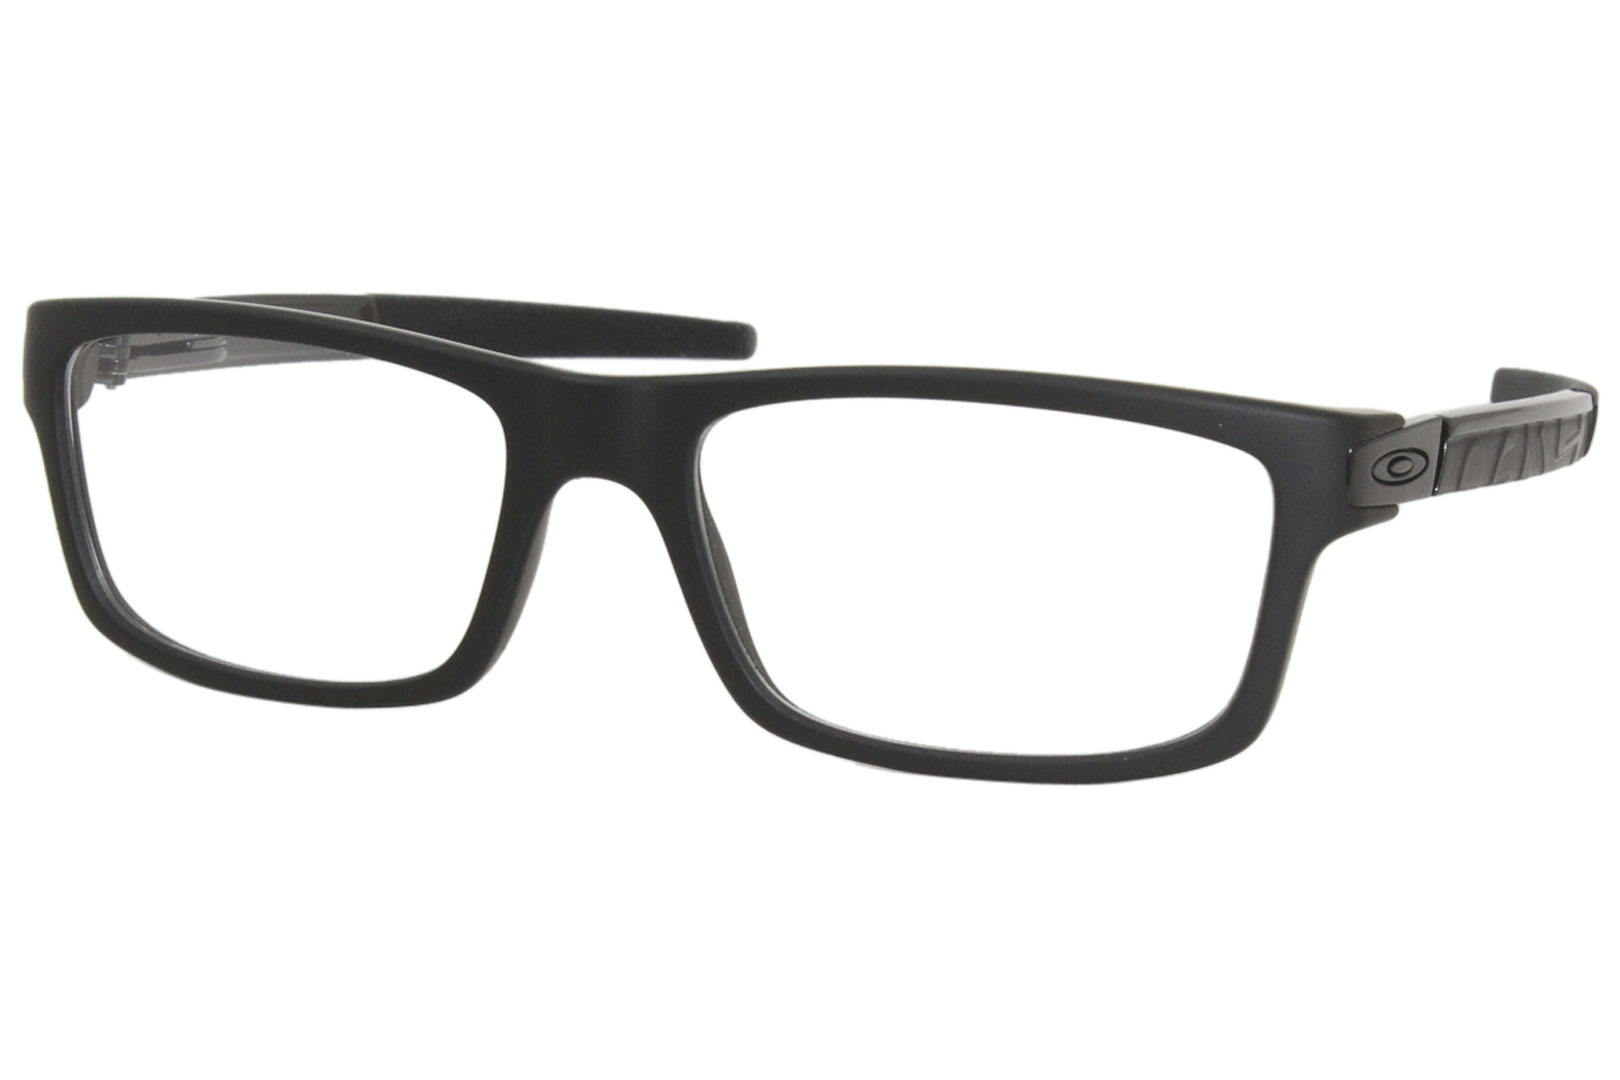 Details about Oakley Currency OX8026 01 Eyeglasses Men's Satin Black Optical Frame 54mm